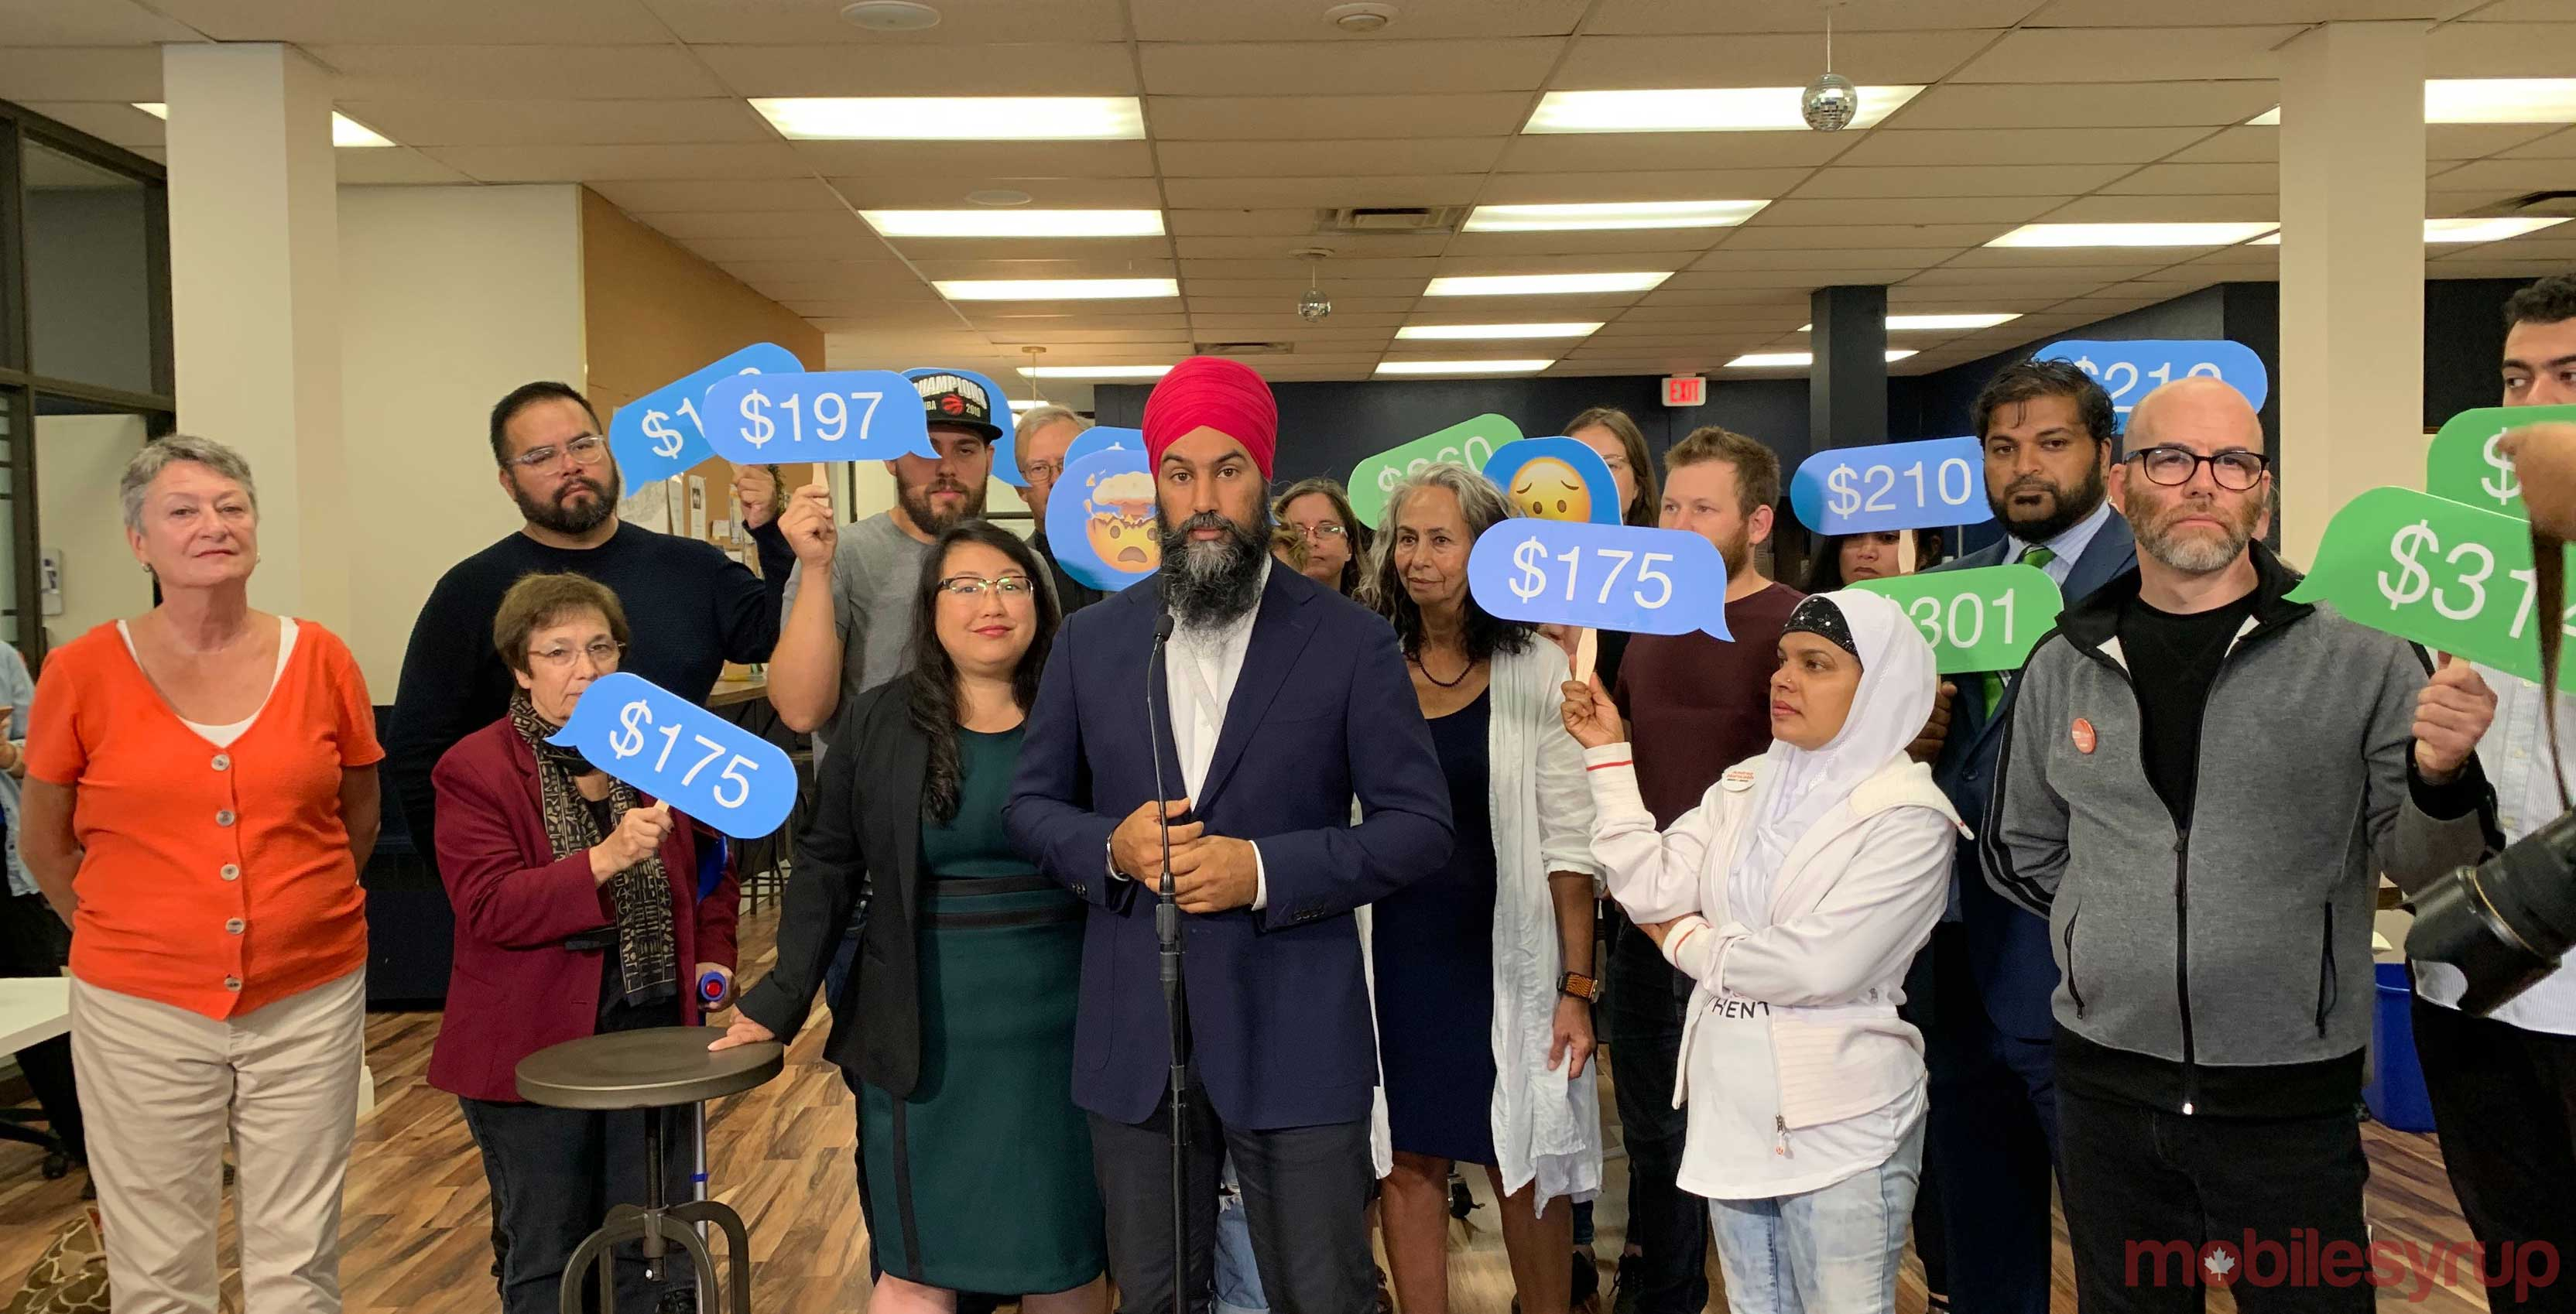 Election 2019: NDP leader Singh 'open' to allowing foreign telecom entrants in Canada